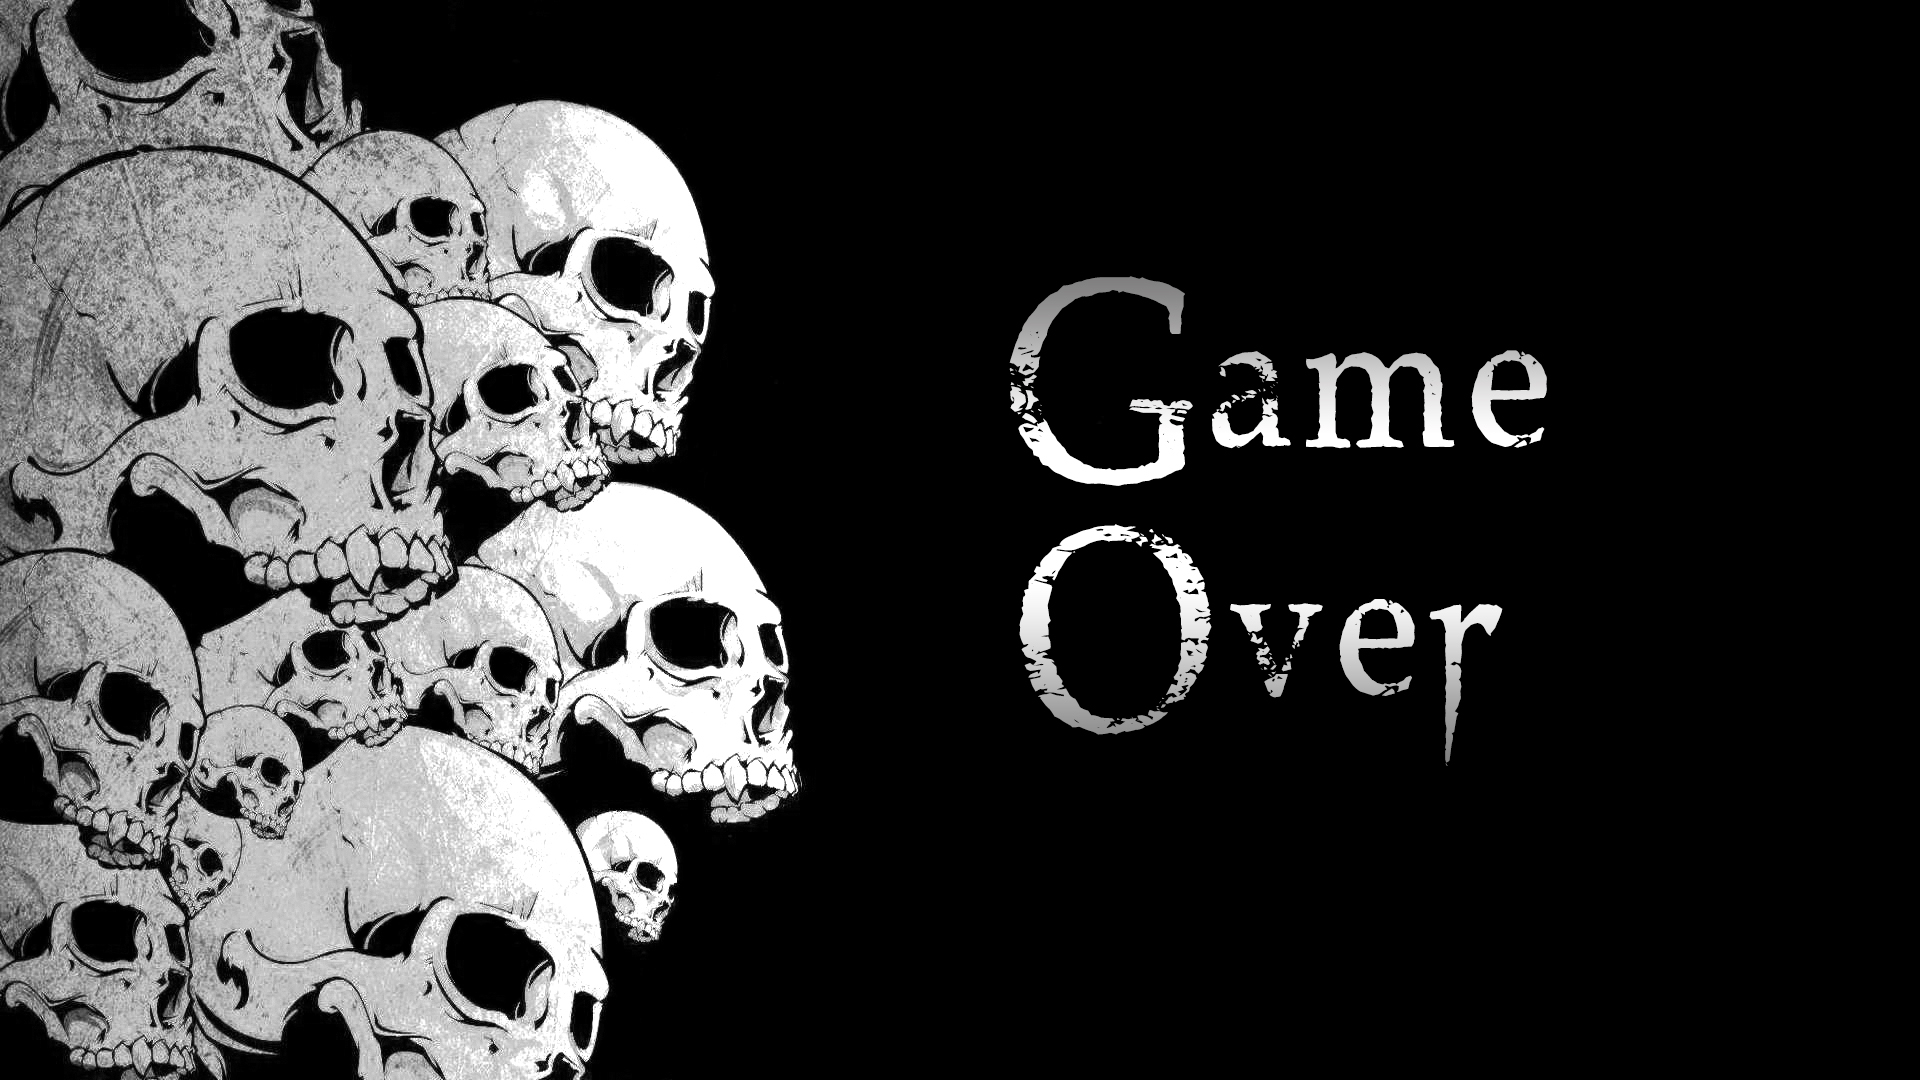 Game Over Wallpaper By Maxyjo On Deviantart HD Wallpapers Download Free Images Wallpaper [1000image.com]